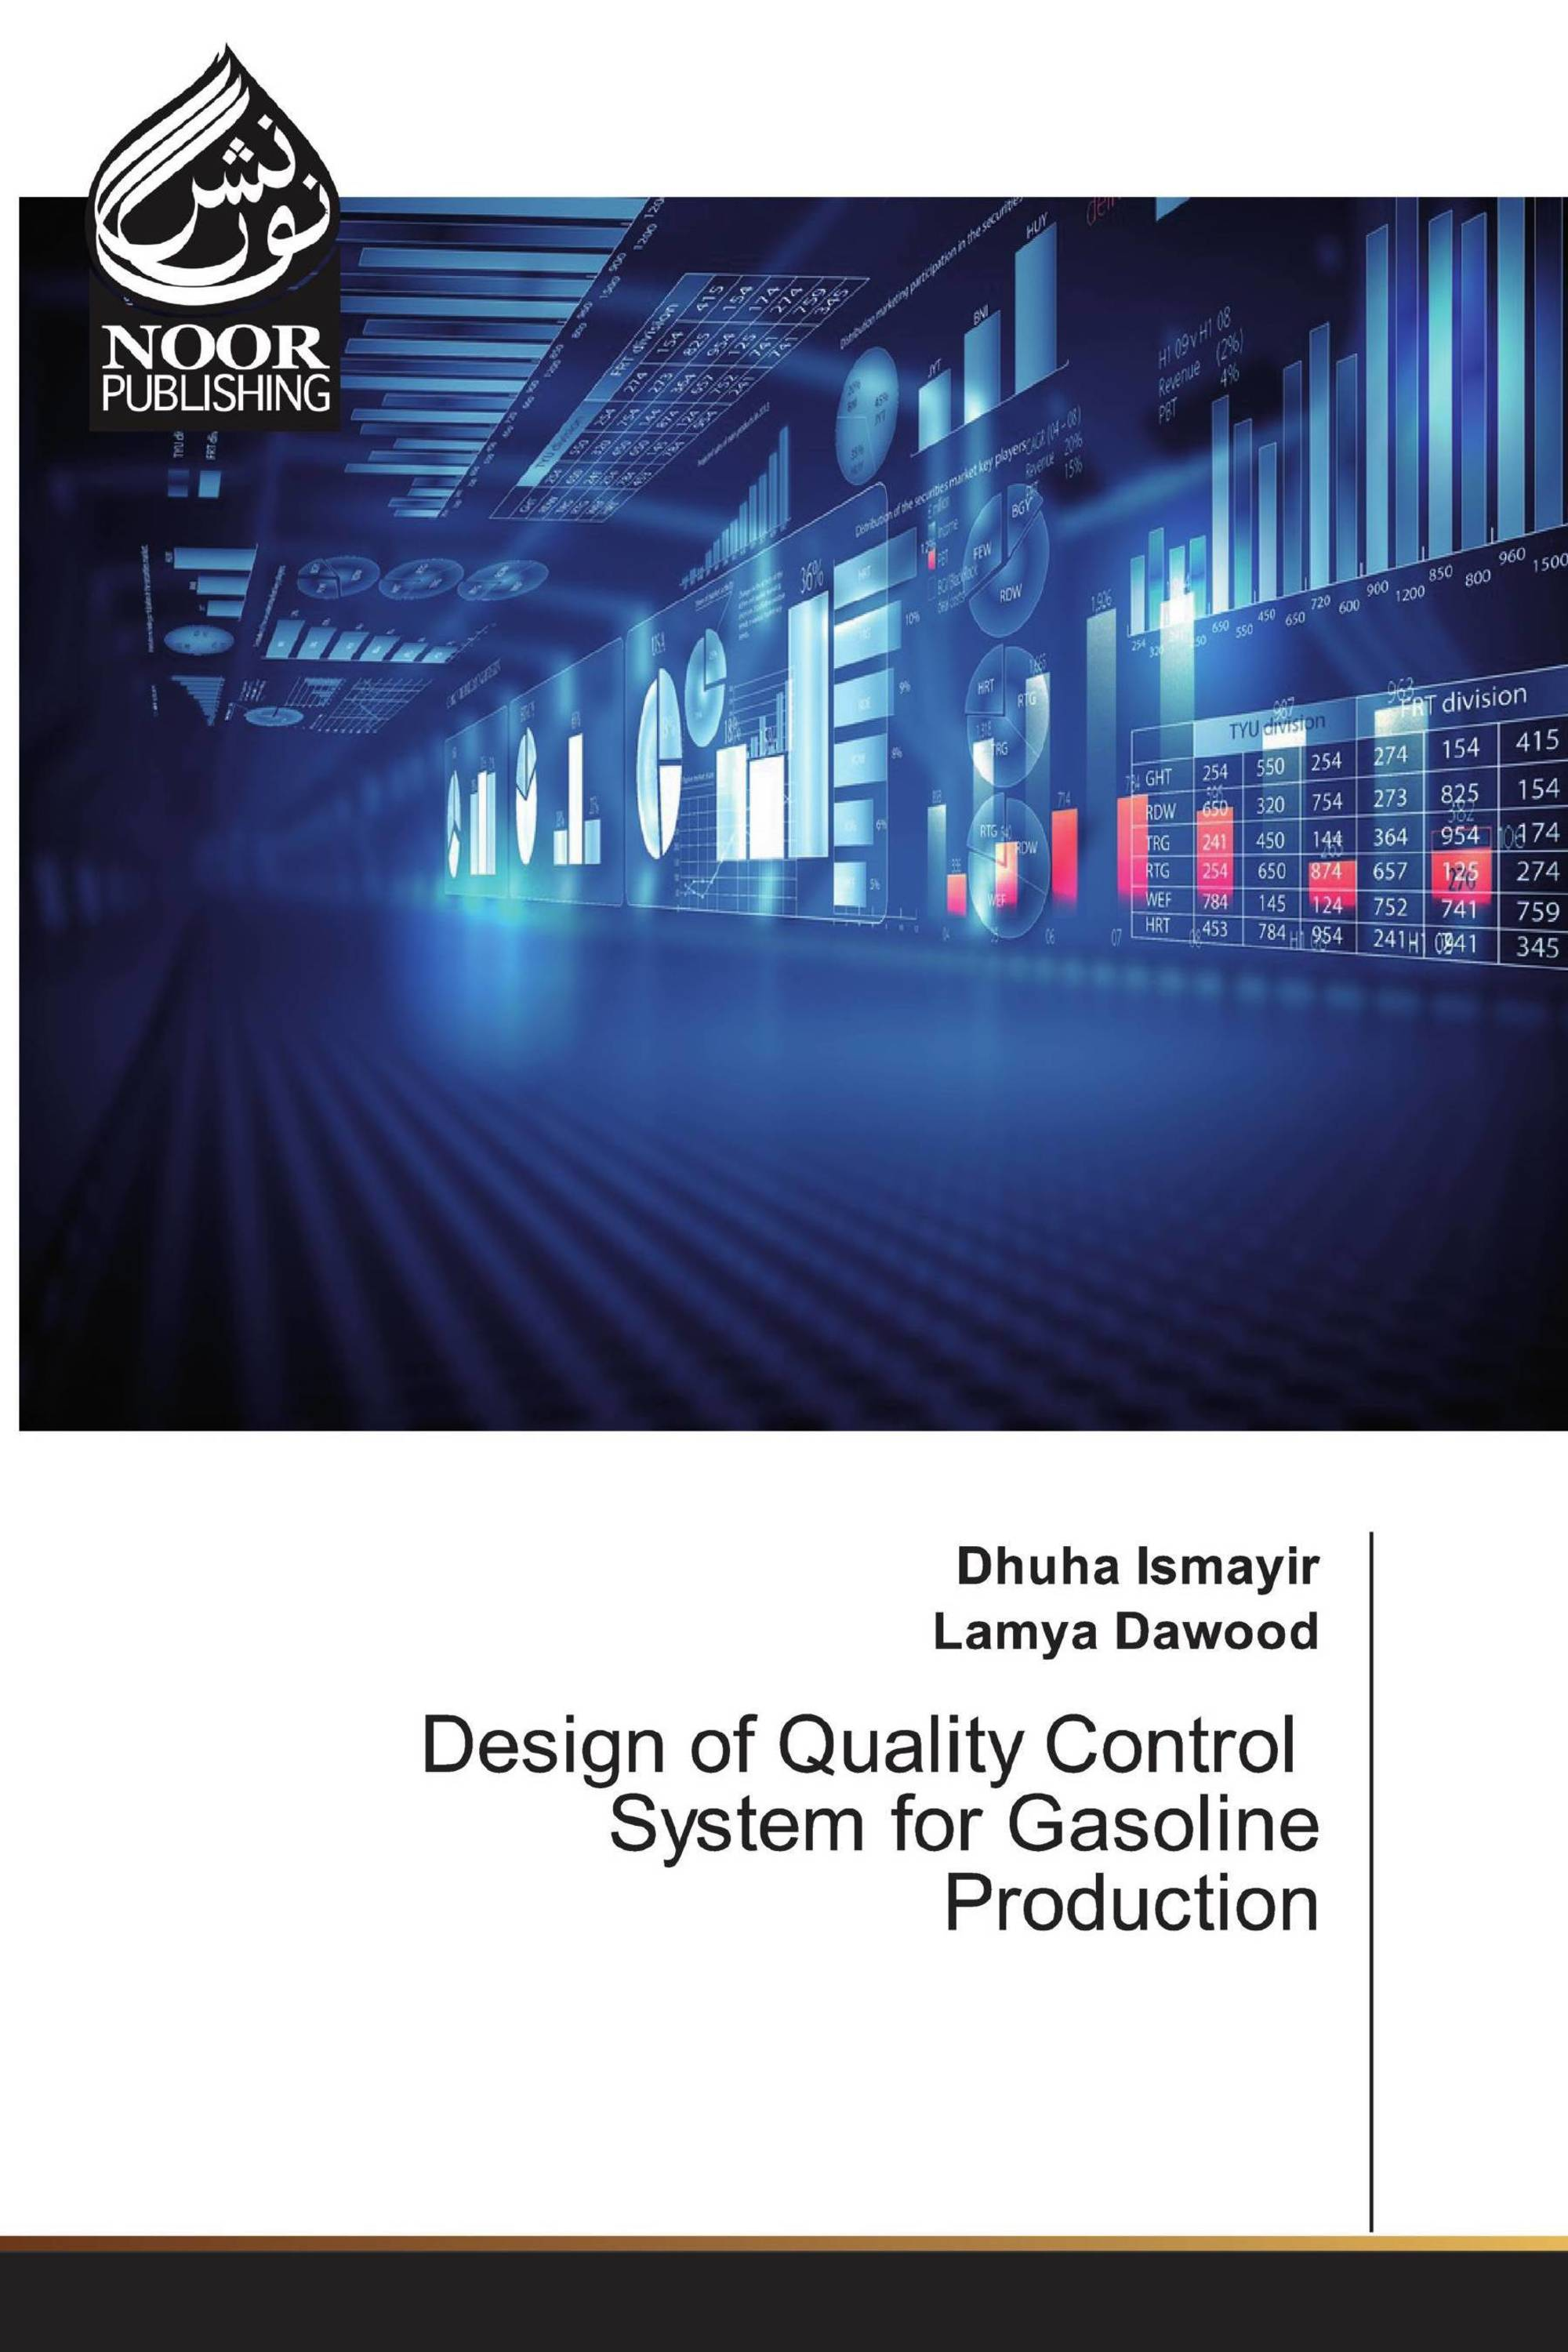 Design Of Quality Control System For Gasoline Production 978 620 0 06631 2 9786200066312 6200066310